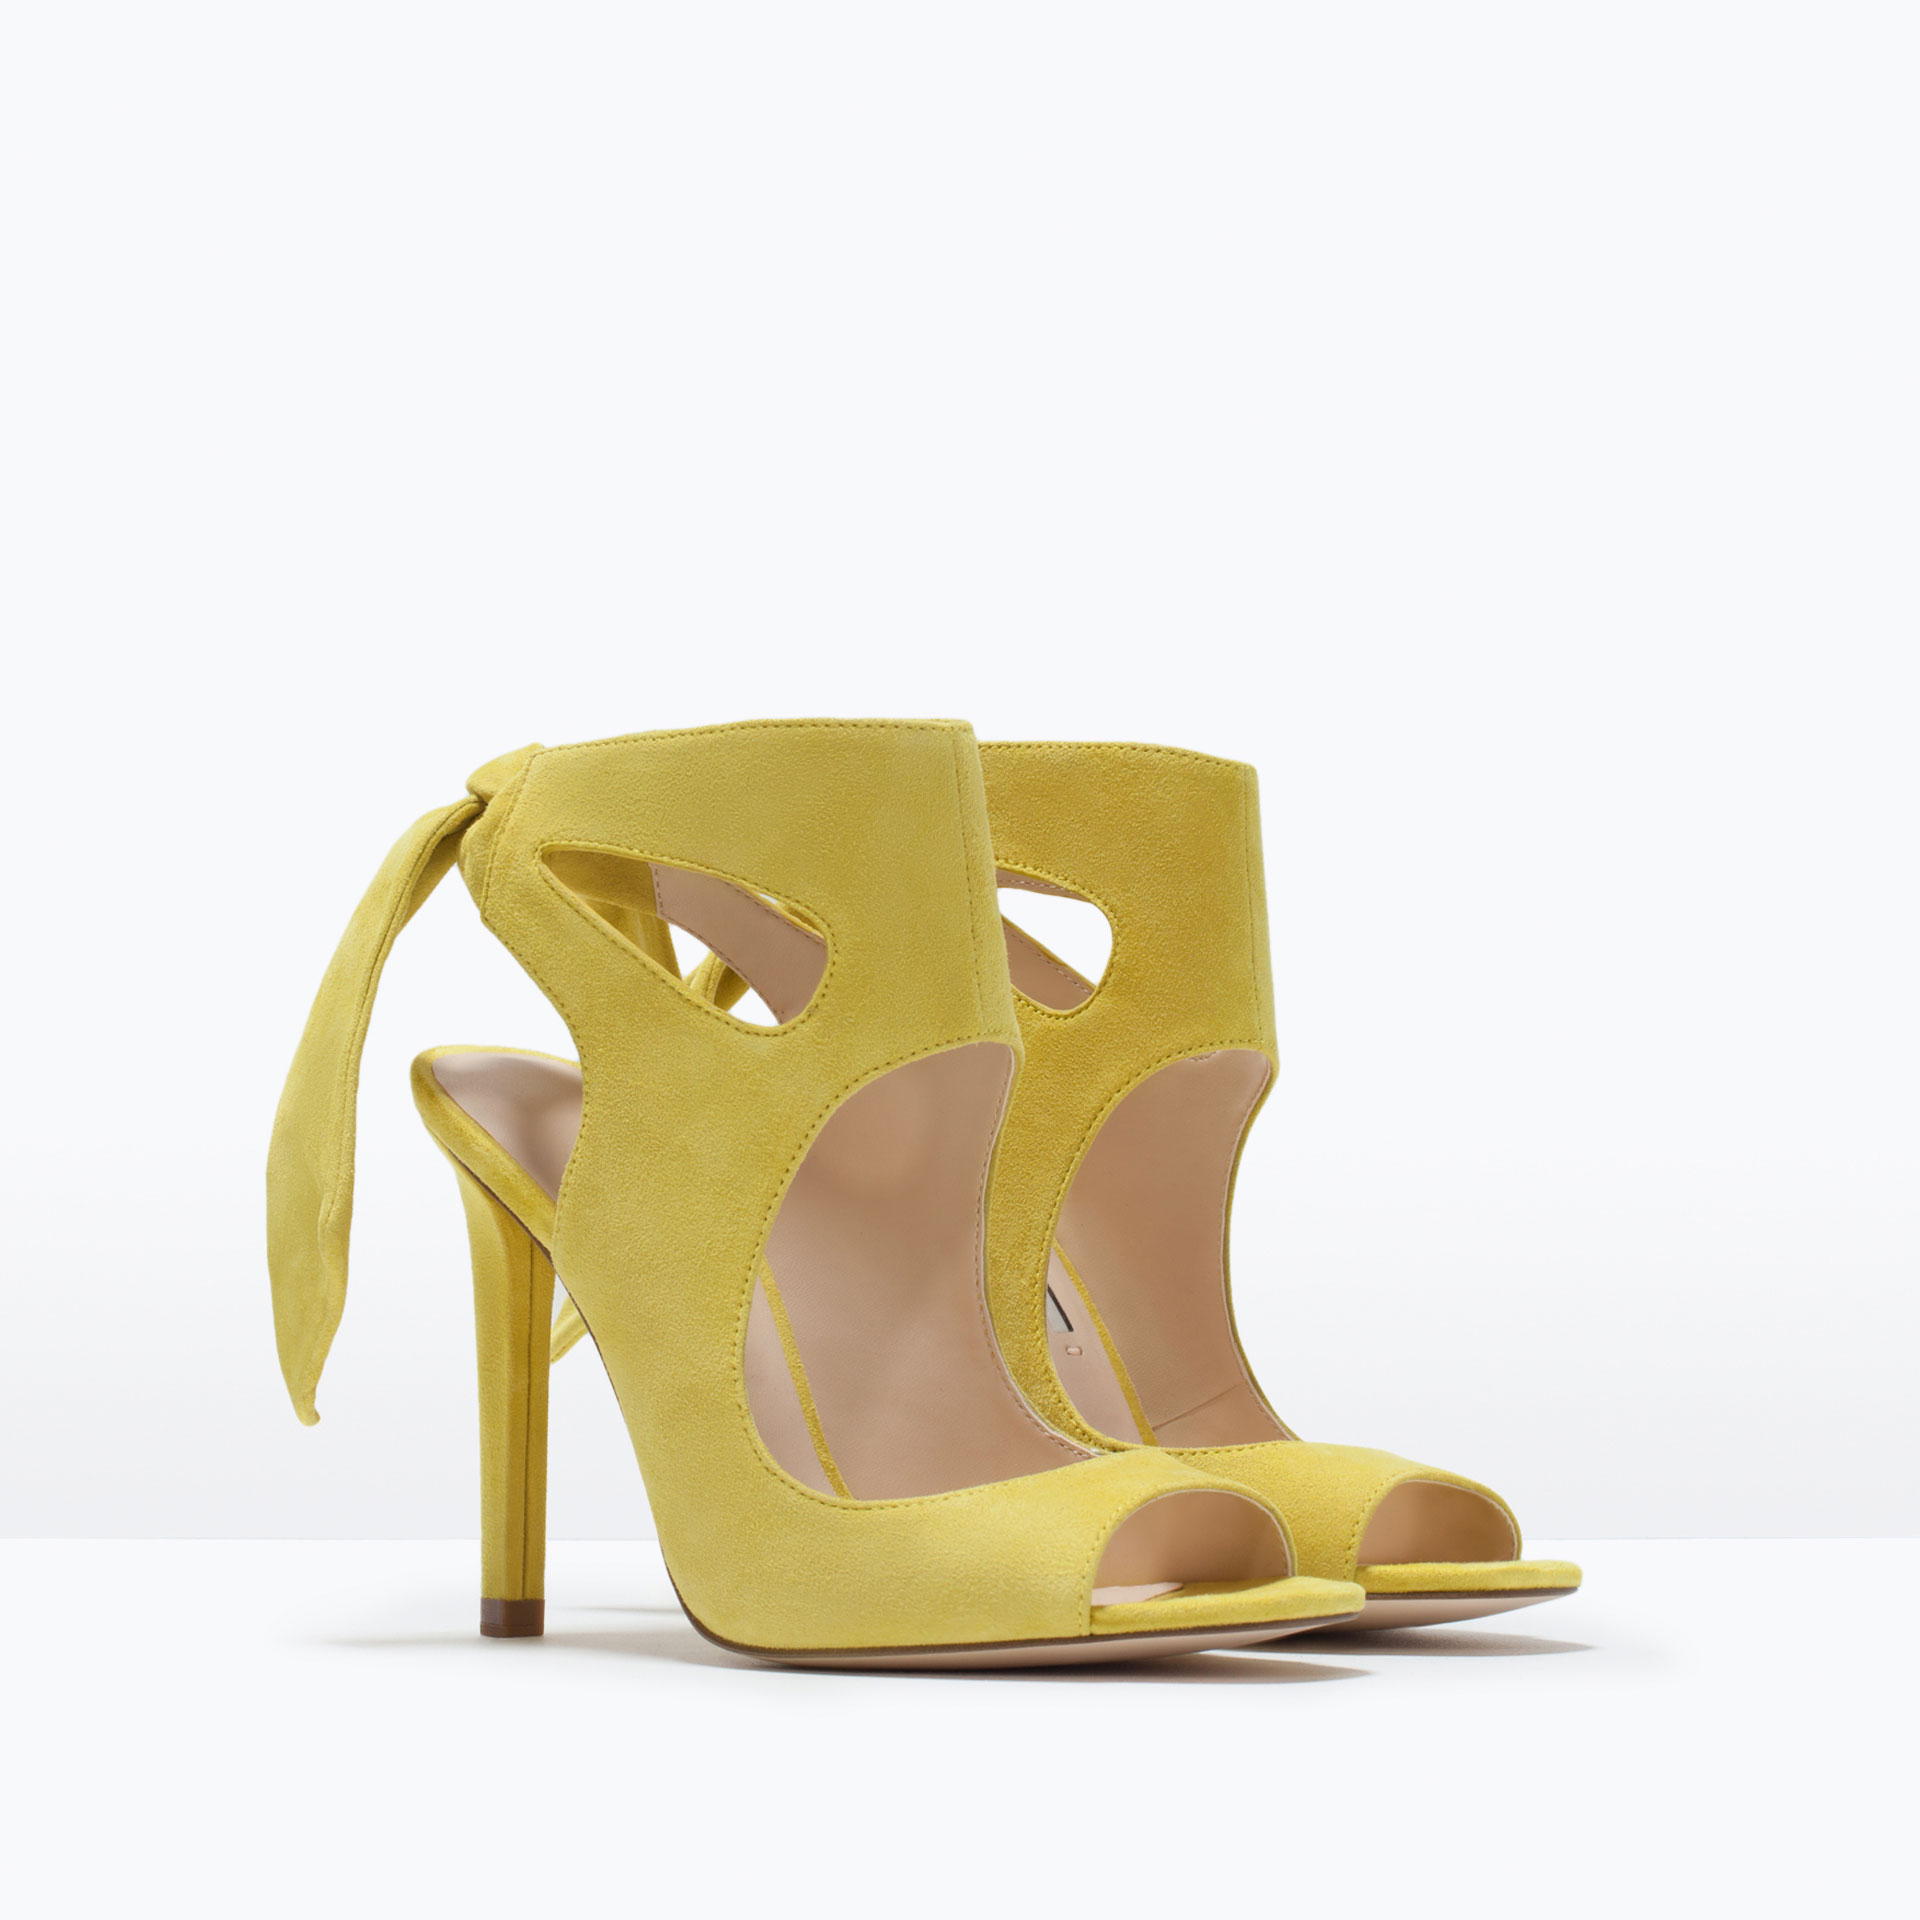 Zara Leather High Heeled Sandals With Bow Leather High